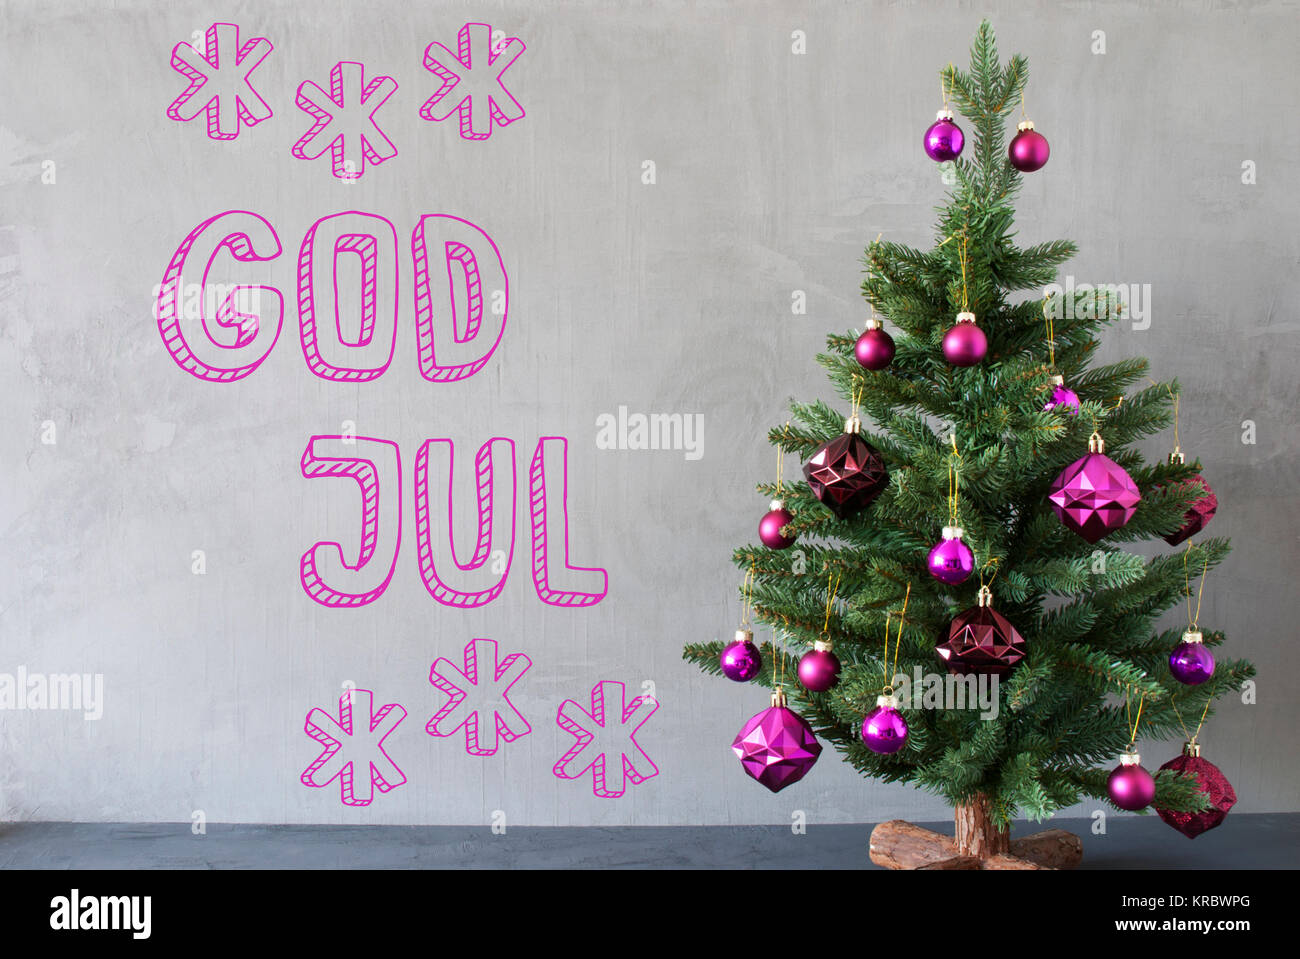 Christmas tree with purple christmas tree balls card for seasons card for seasons greetings gray cement or concrete wall for urban modern industrial styl swedish text god jul means merry christmas kristyandbryce Choice Image